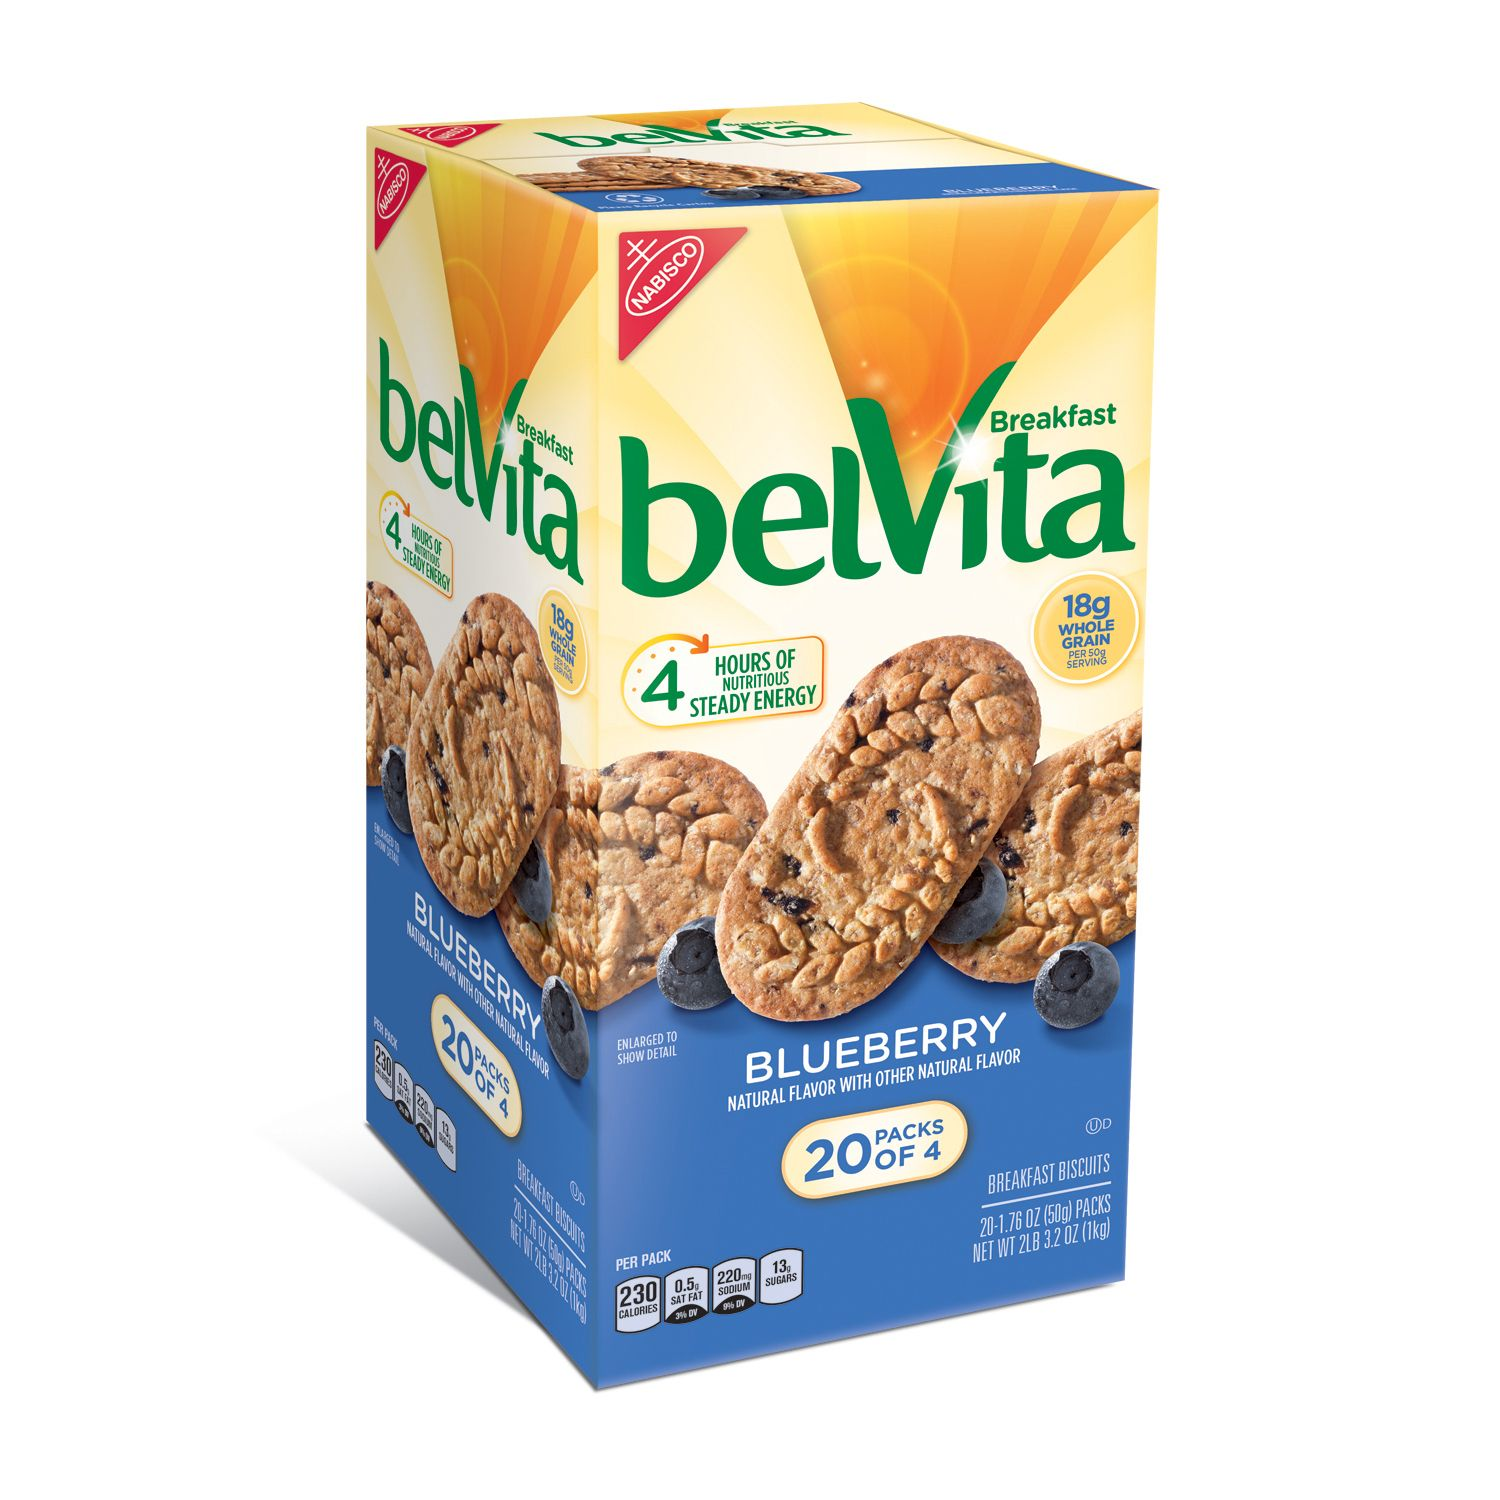 belVita Breakfast Biscuits Blueberry 4 Packs, 1.76 oz, 20 Count